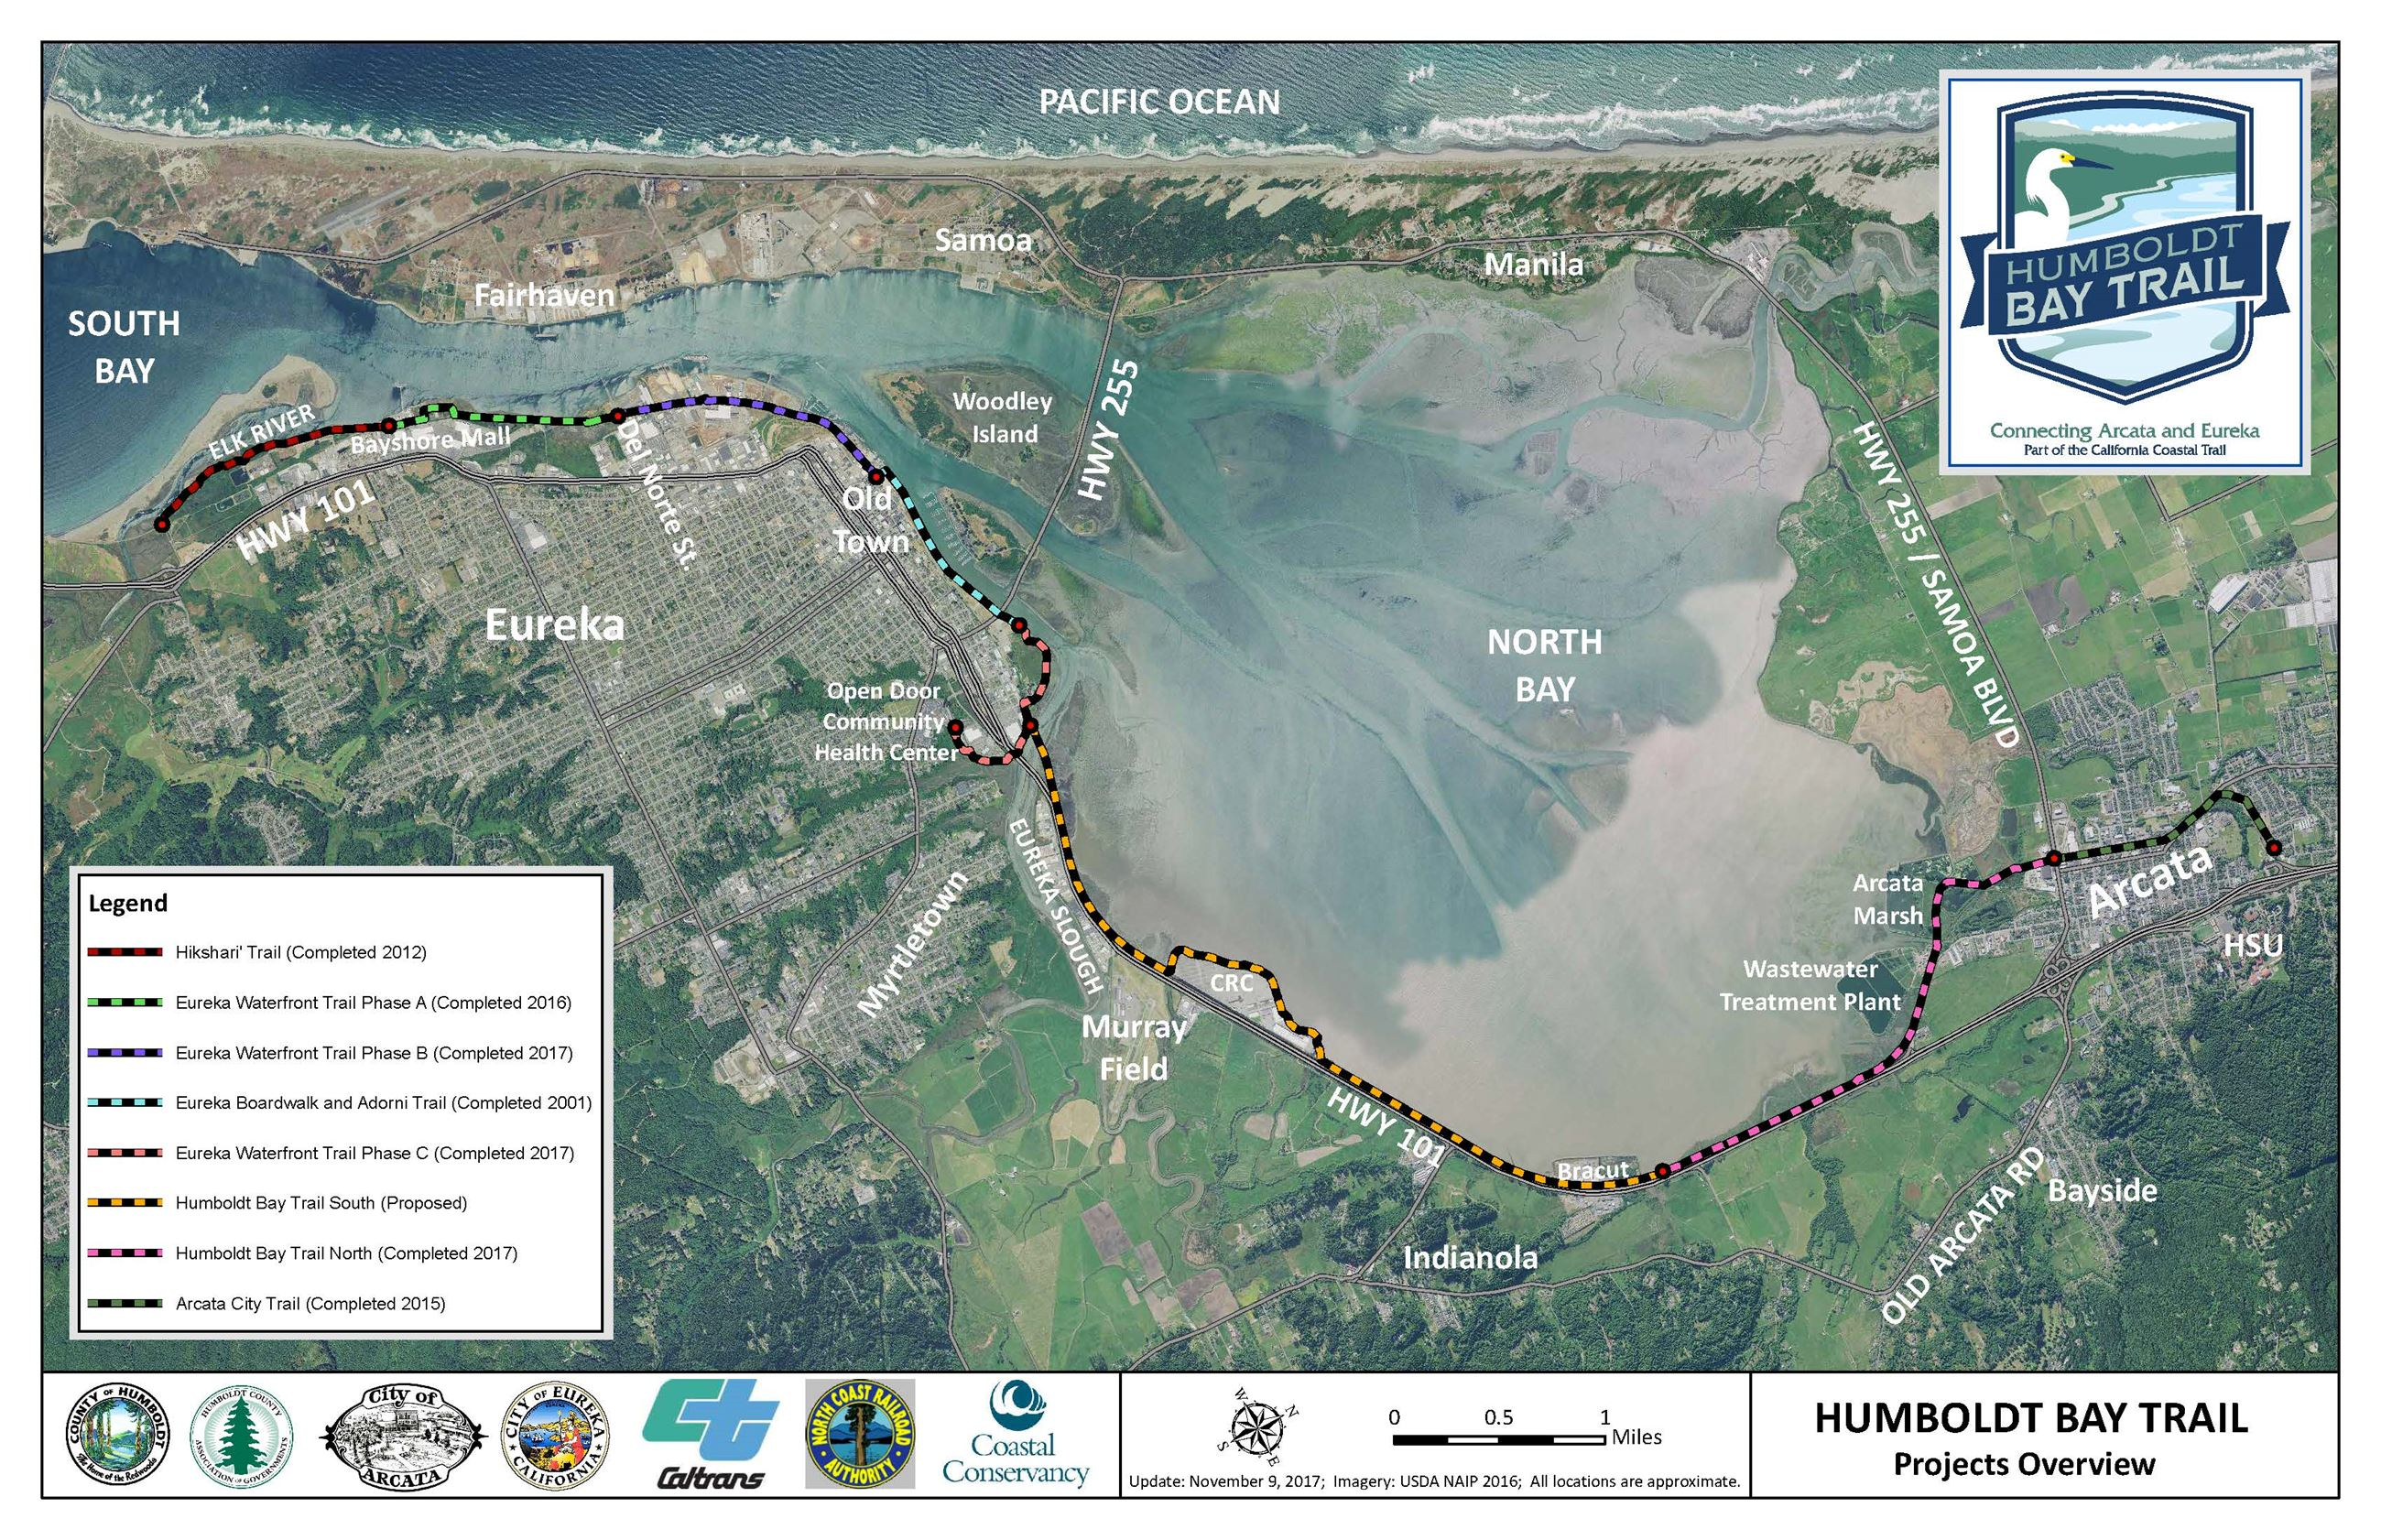 Humboldt Bay Trail Projects Overview Map November 2017